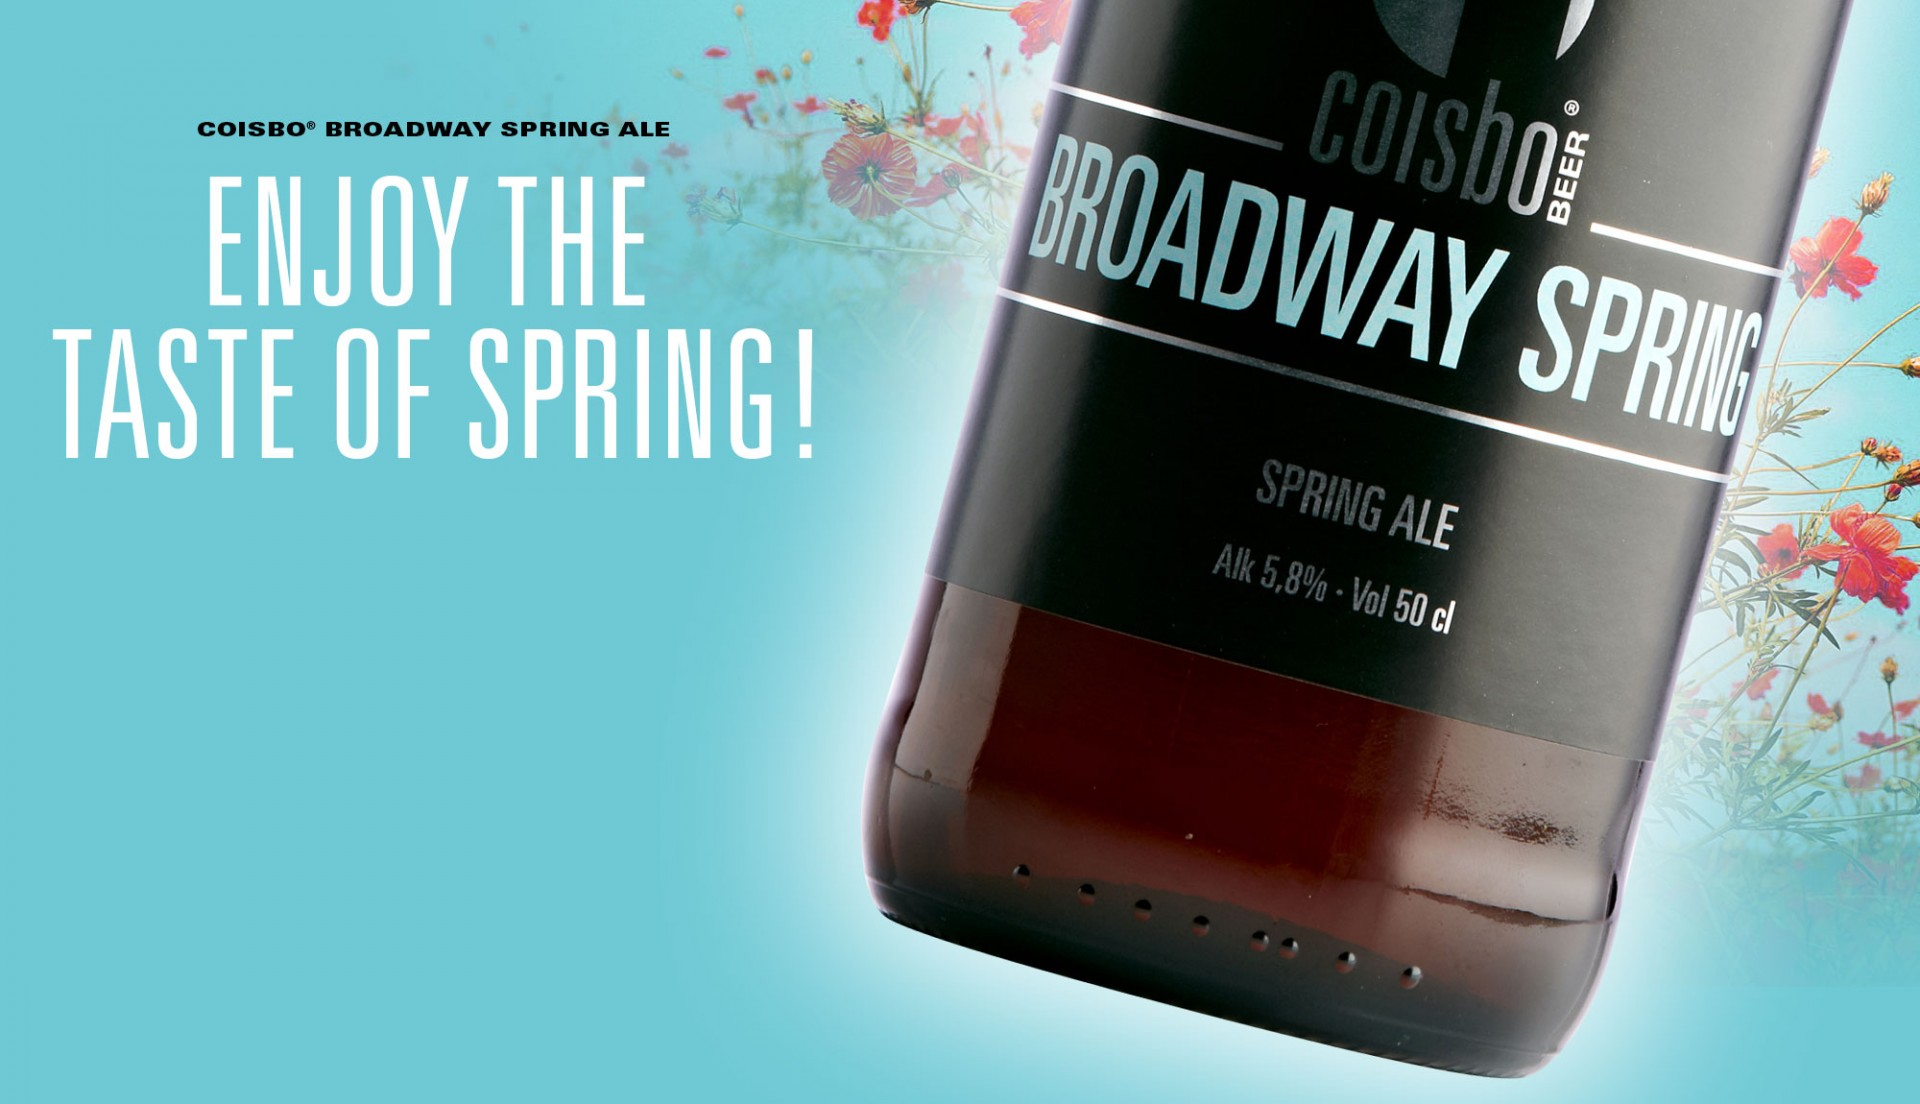 Enjoy the taste of spring!